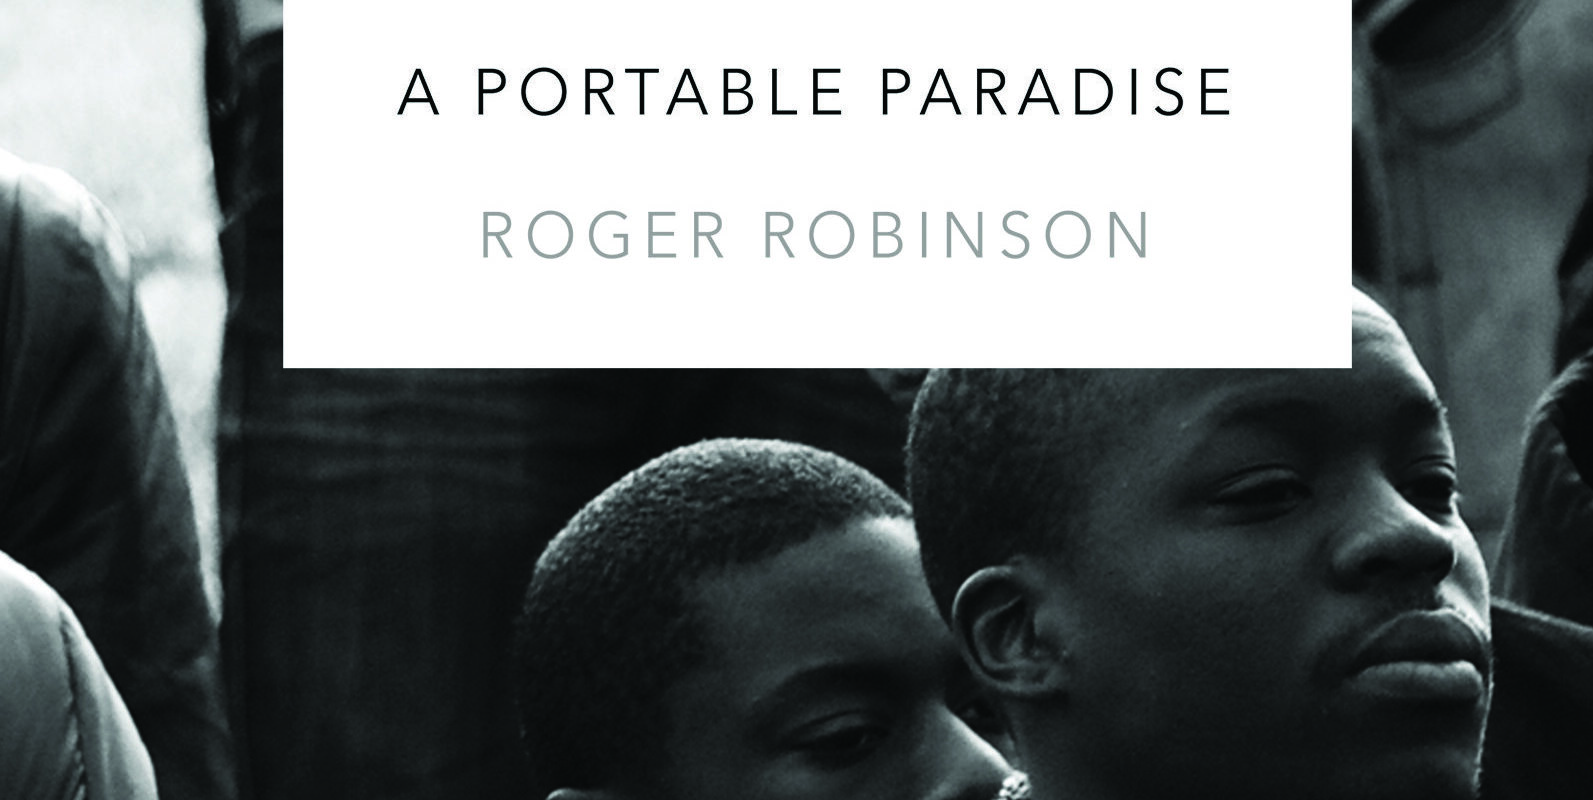 The cover of Roger Robinson's A Portable Paradise